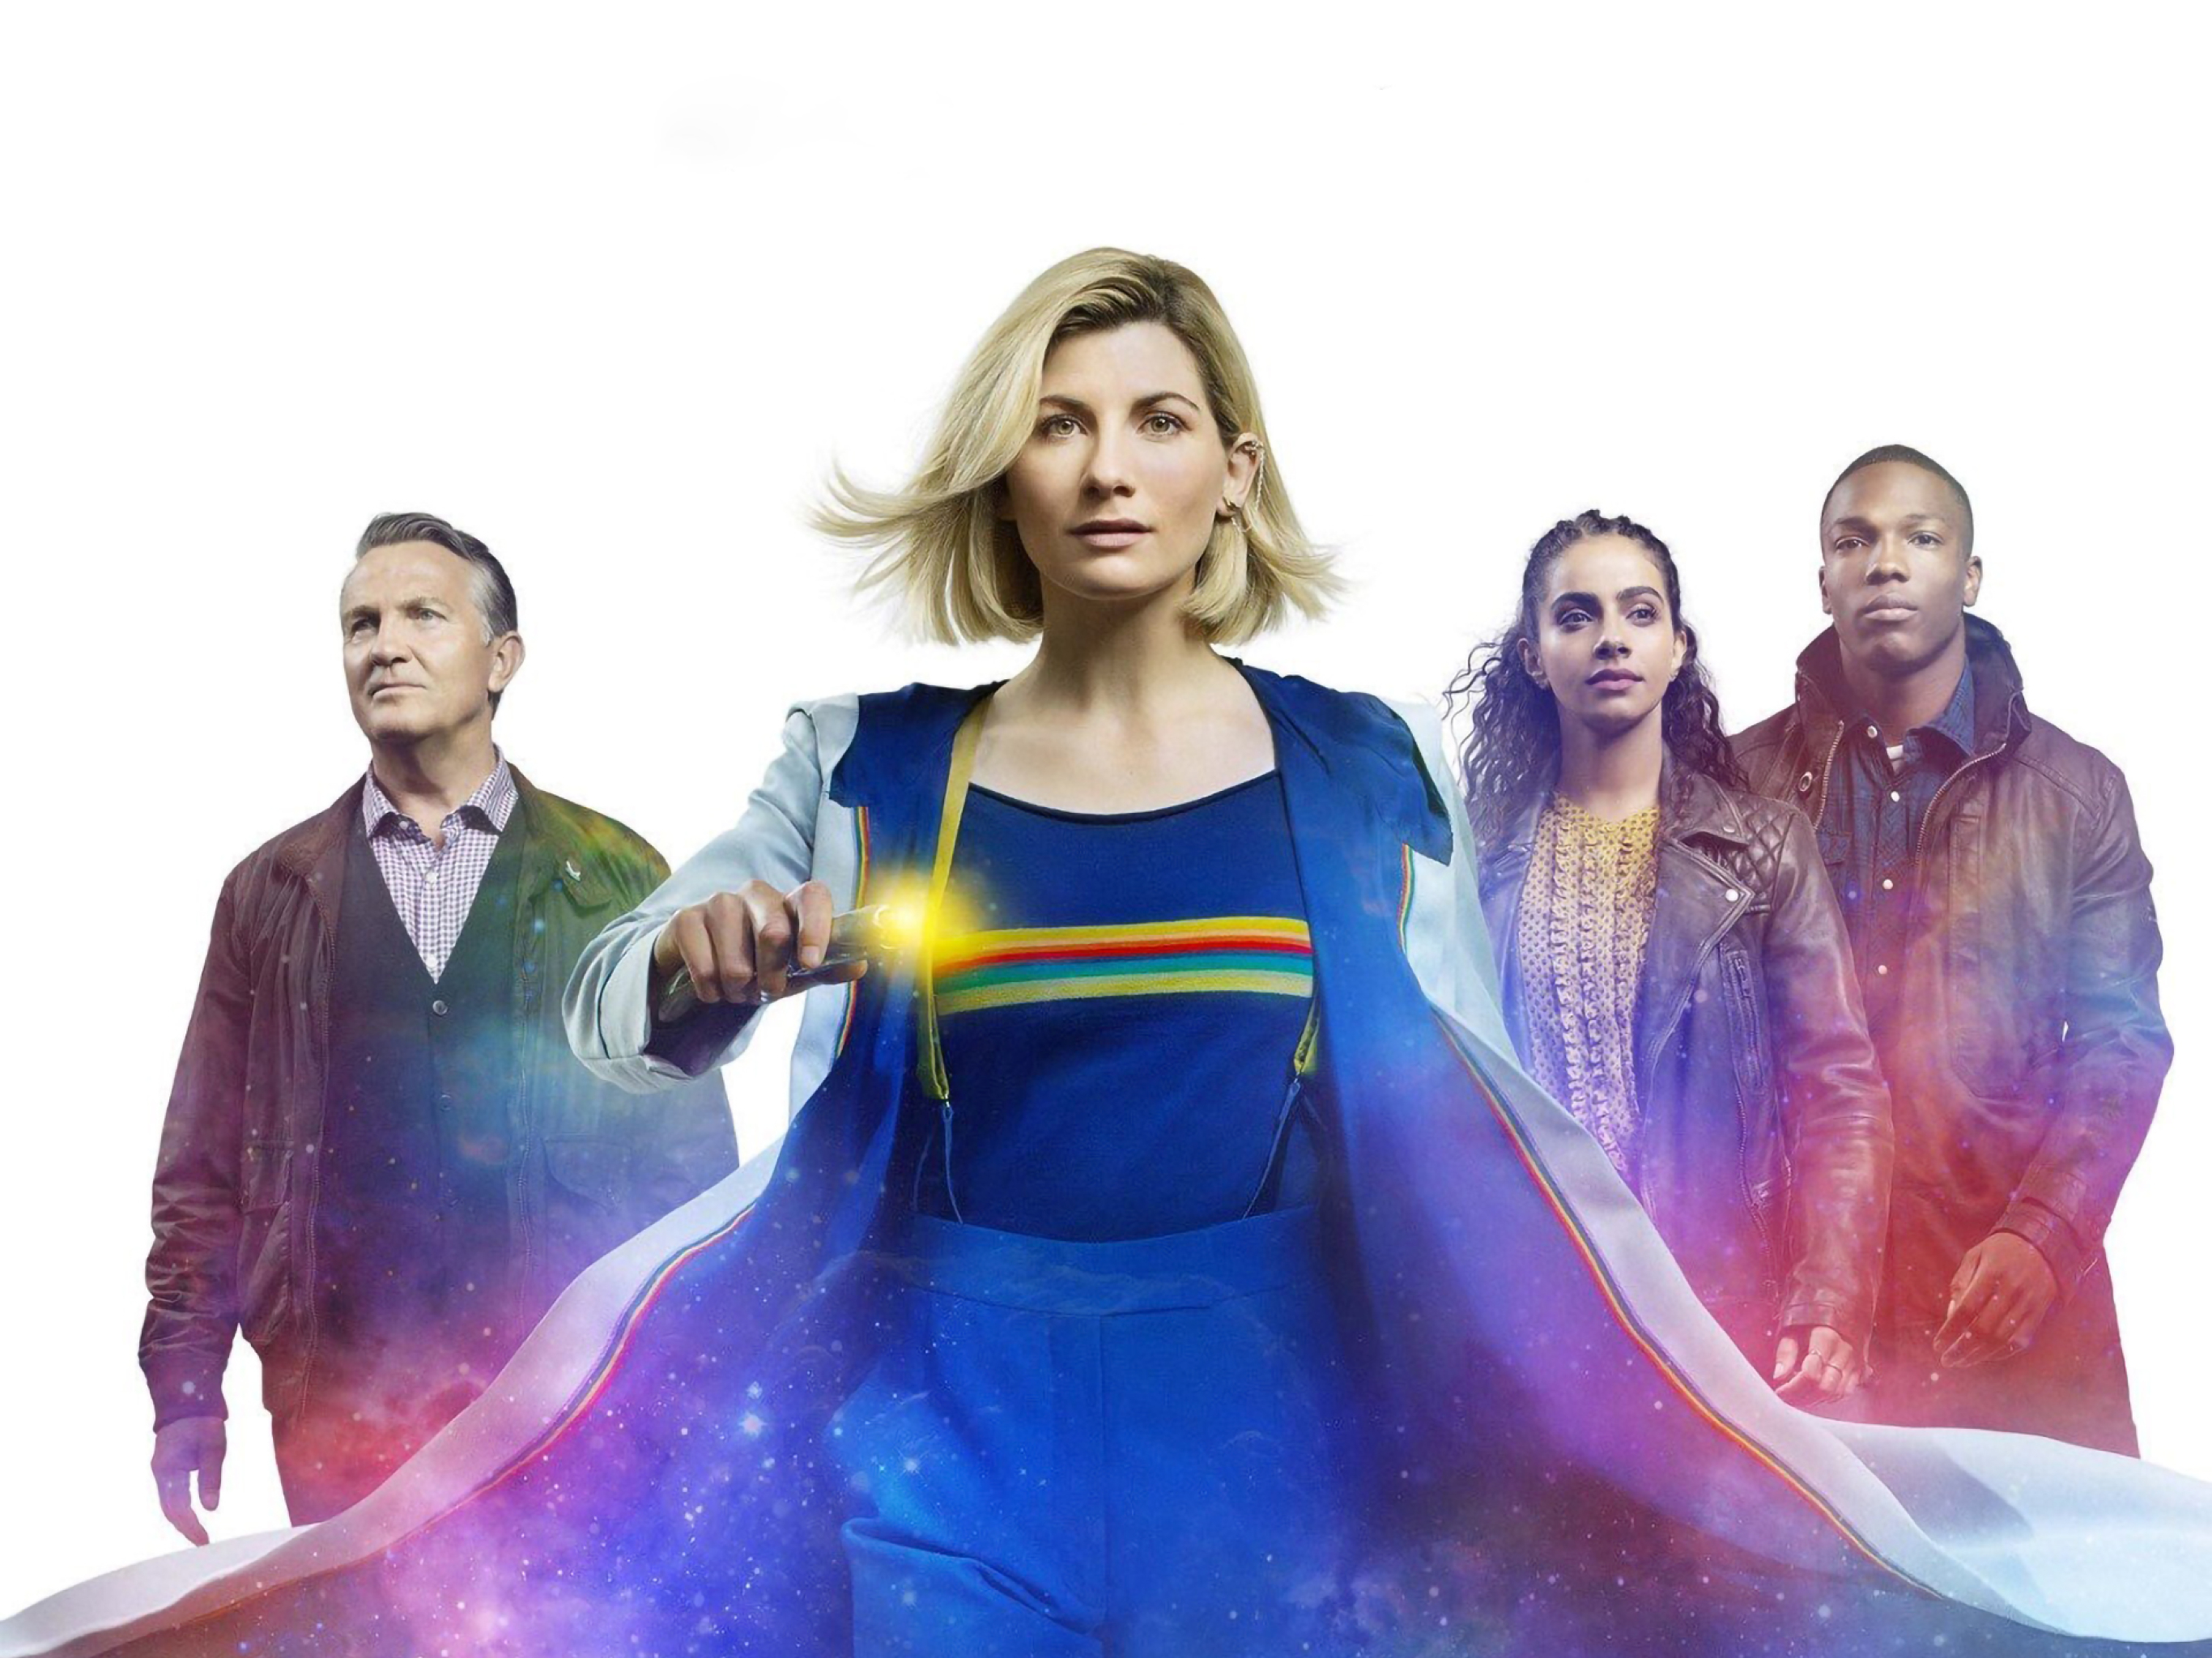 2732x2048 Doctor Who Season 12 2732x2048 Resolution Wallpaper Hd Tv Series 4k Wallpapers Images Photos And Background